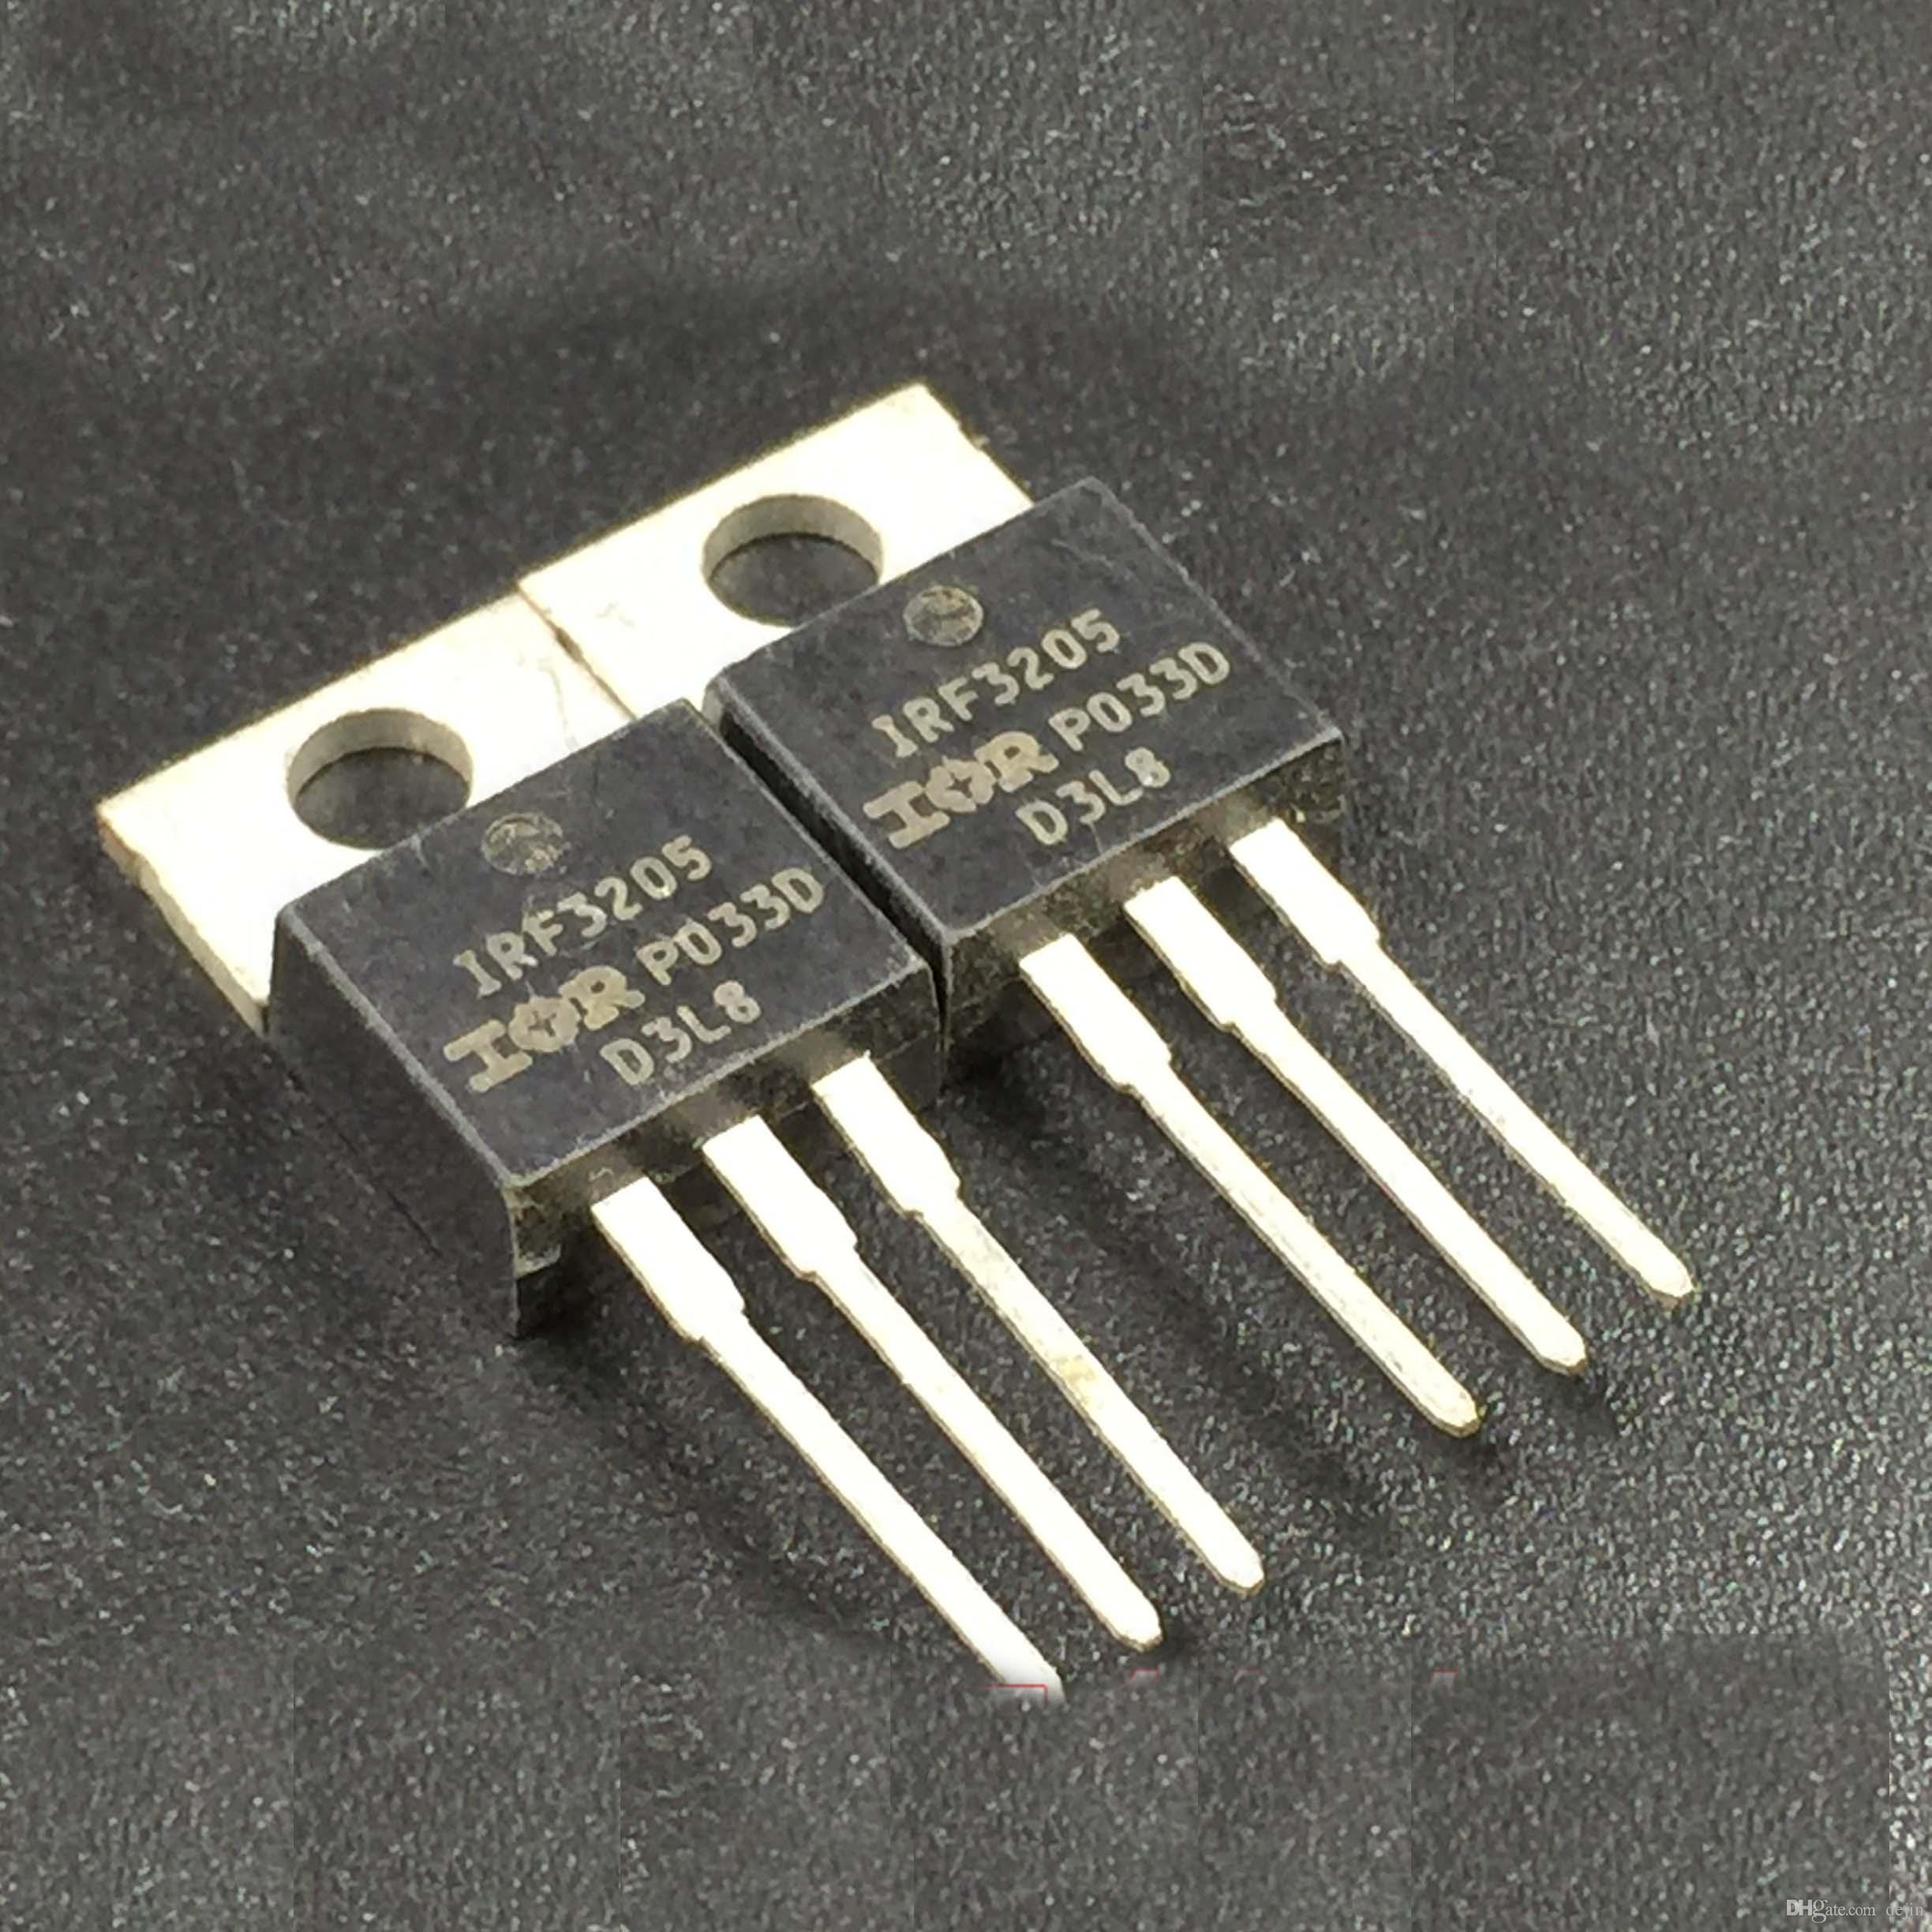 Irf3205pbf To220 Irf3205 To 220 Power Mosfet Used And Refurbished Gt30f124 30f124 But In Good Working Condition Online With 458 Piece On Dejins Store